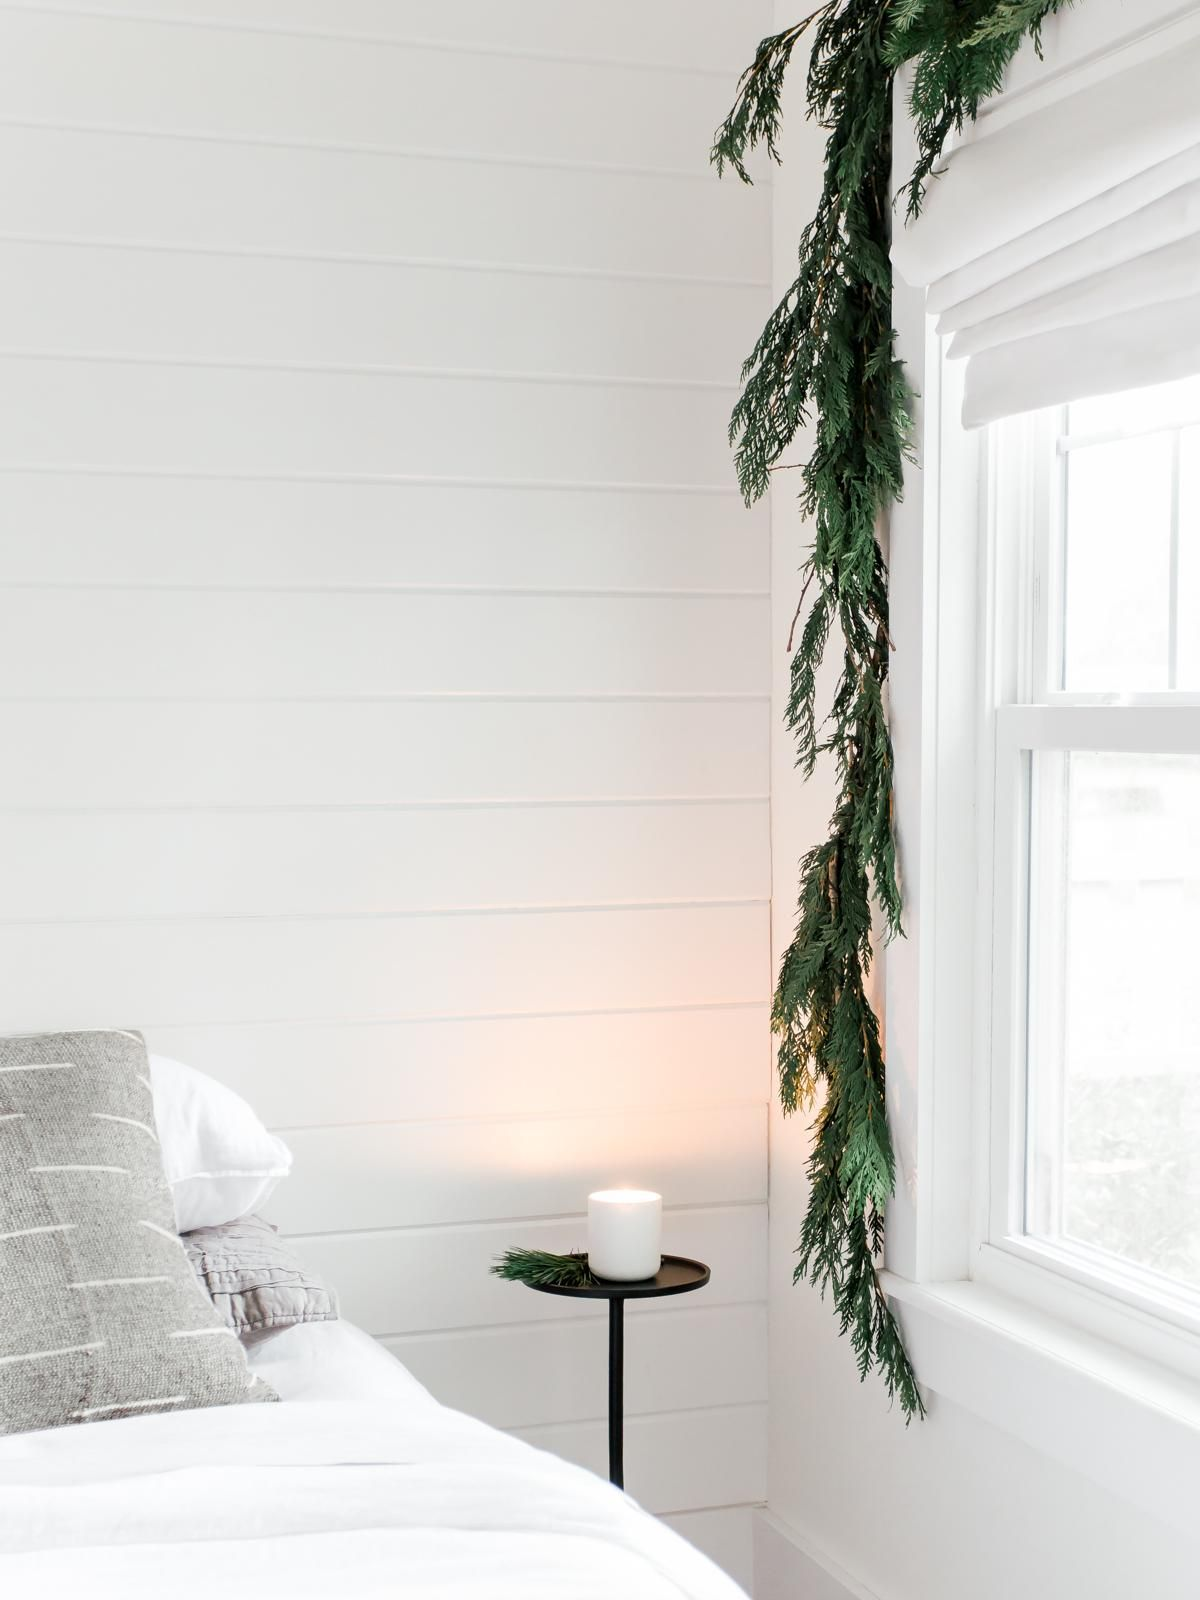 Christmas Queens Tour 2020 Proof That Simplicity Reigns Queen in This Holiday Home Tour